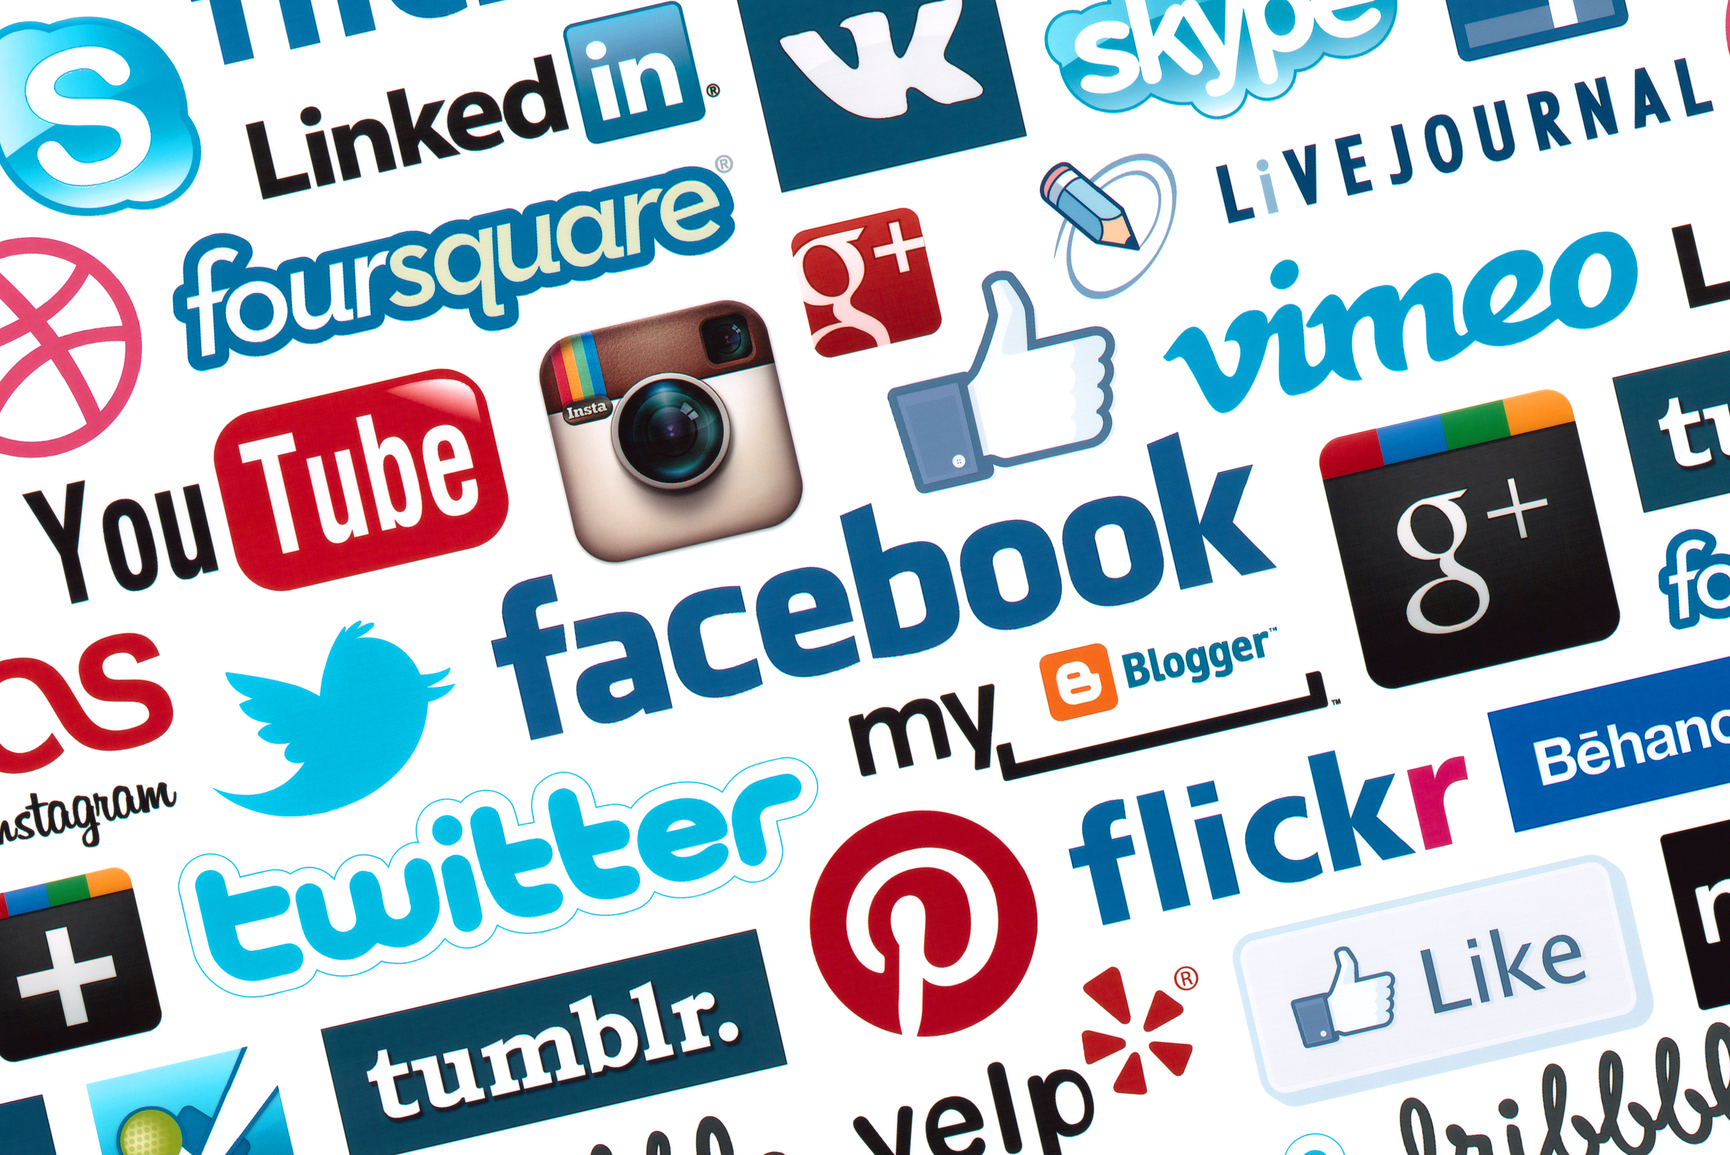 Expert Social Media Tips To Help Grow Your Business